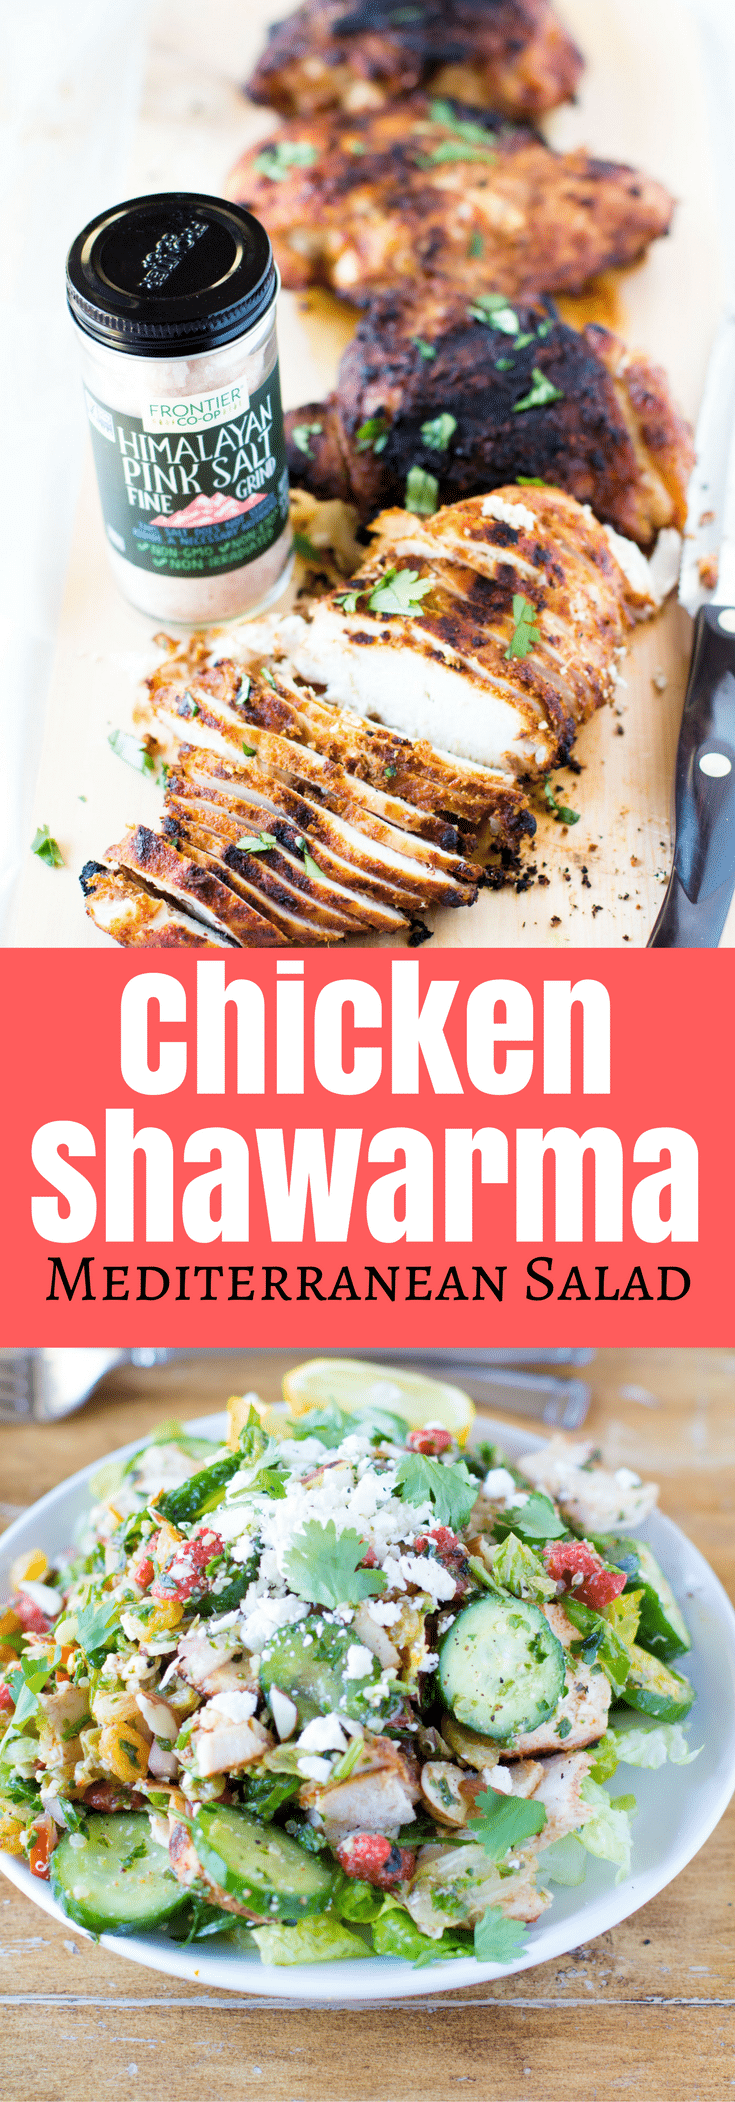 Chicken Shawarma Mediterranean Salad - flavorful juicy chicken, grilled to perfection on top a crunchy super chopped salad for flavor in every single bite! Gluten Free